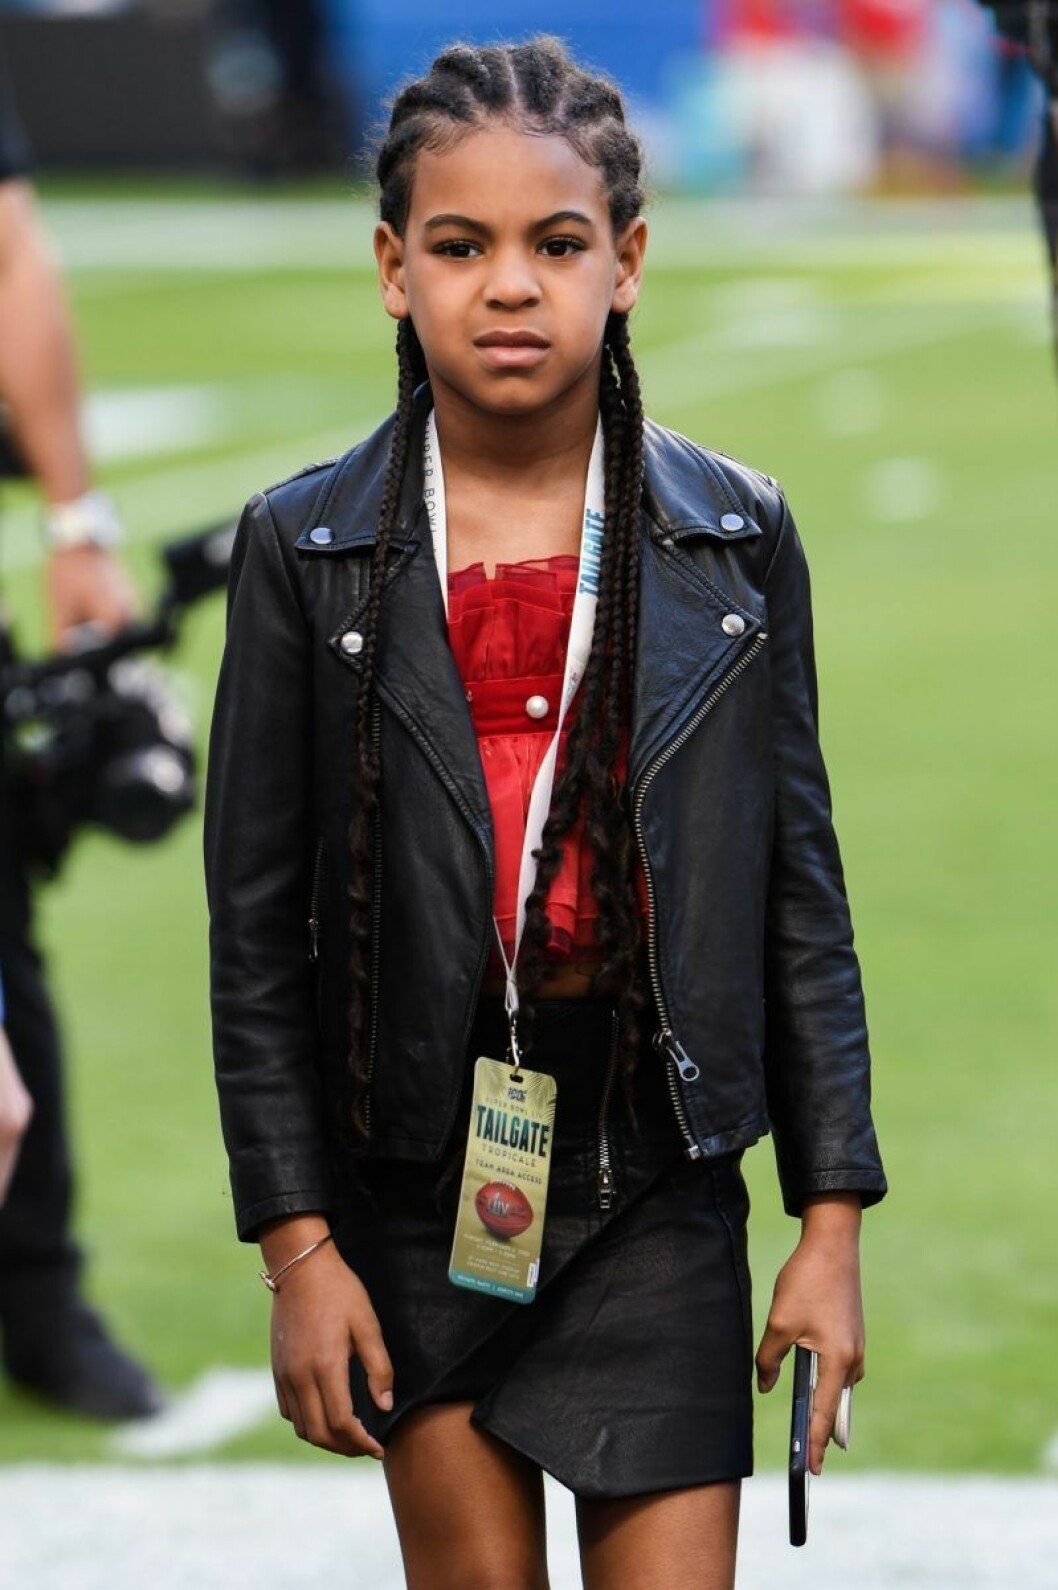 Blue Ivy Carter på Super Bowl 2020.